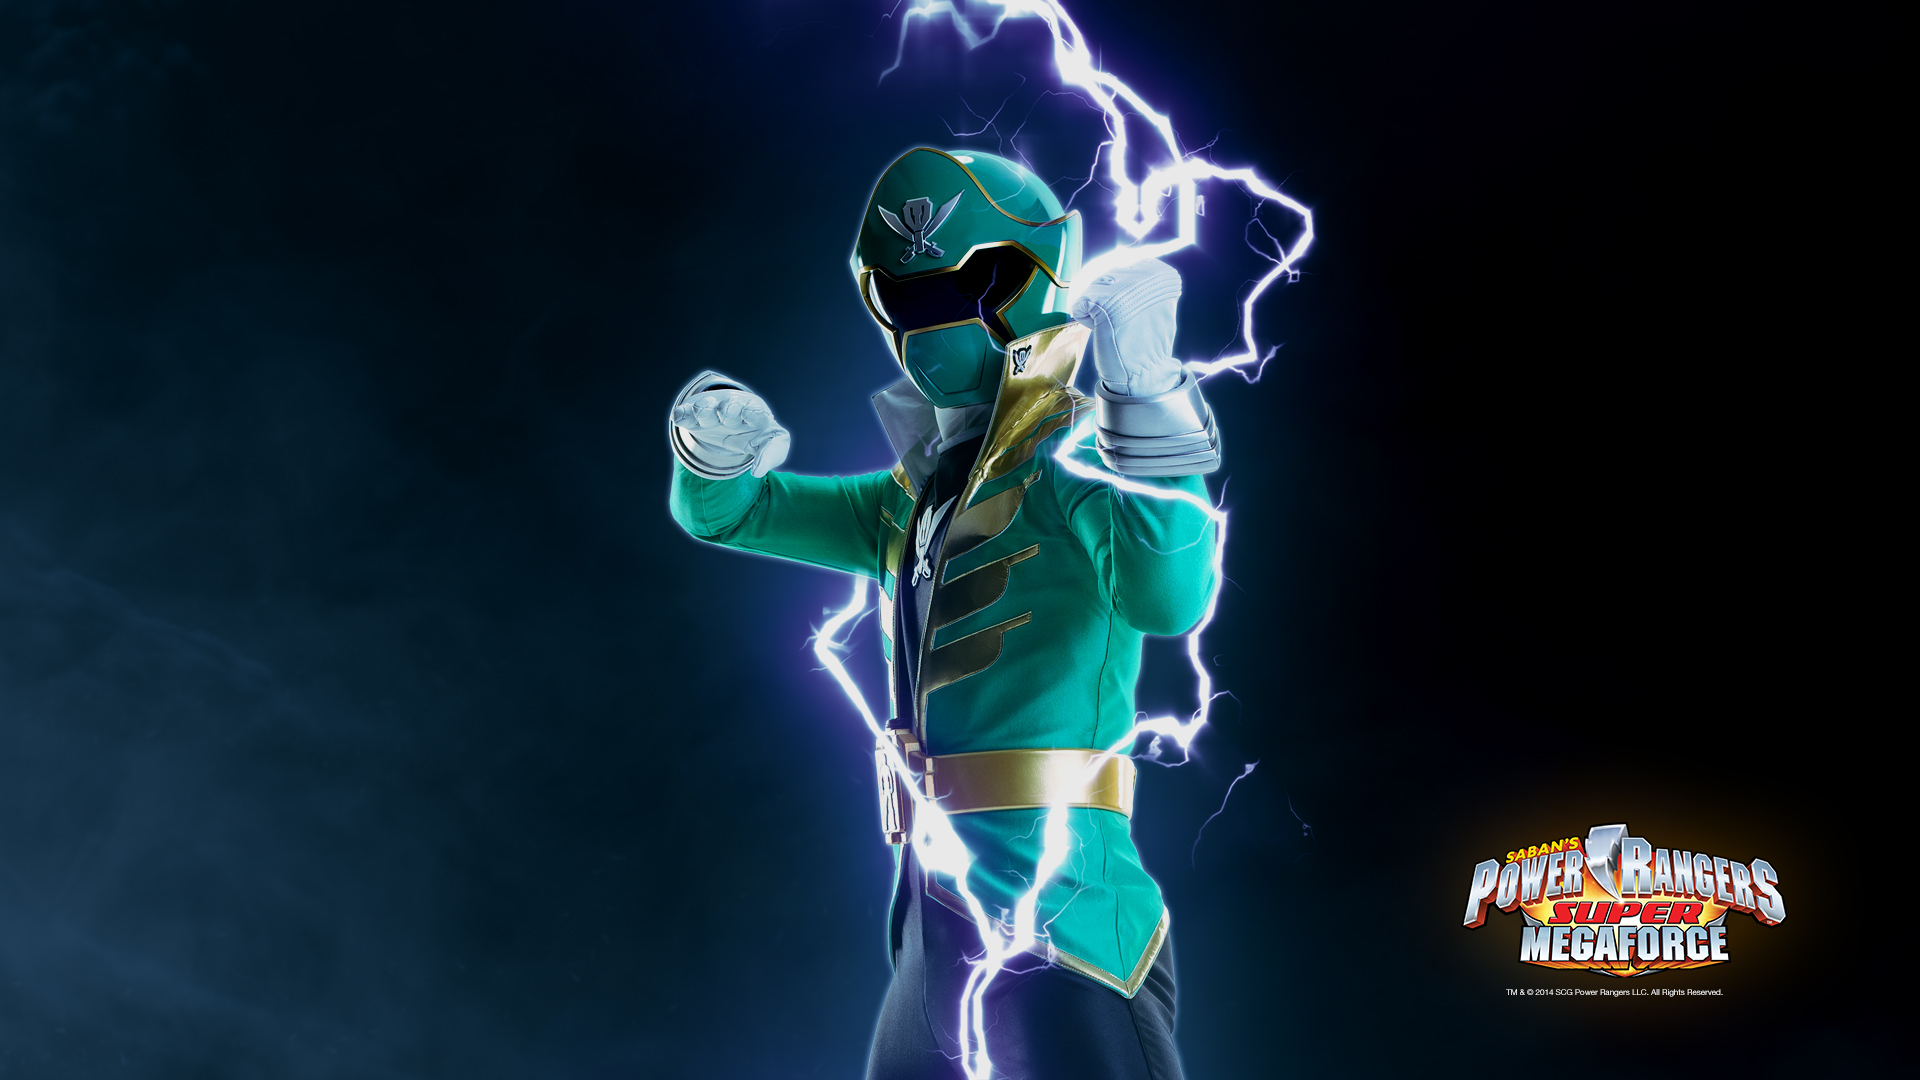 200 power ranger wallpaper - photo #22